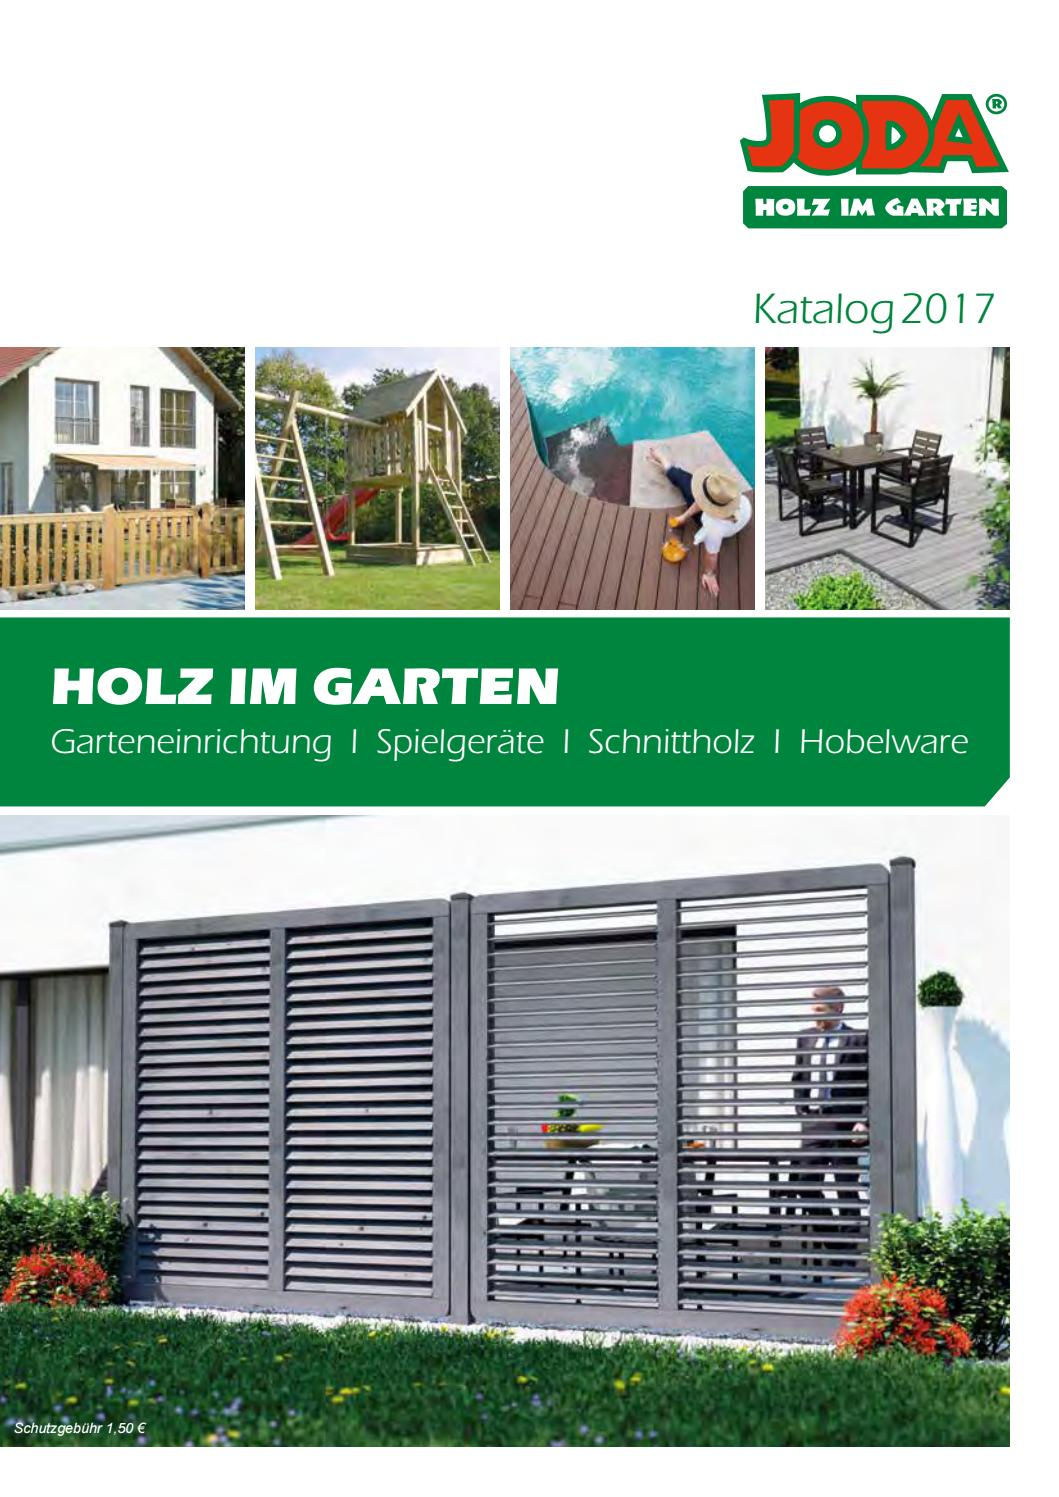 joda holz im garten by holzland dostler gmbh issuu. Black Bedroom Furniture Sets. Home Design Ideas